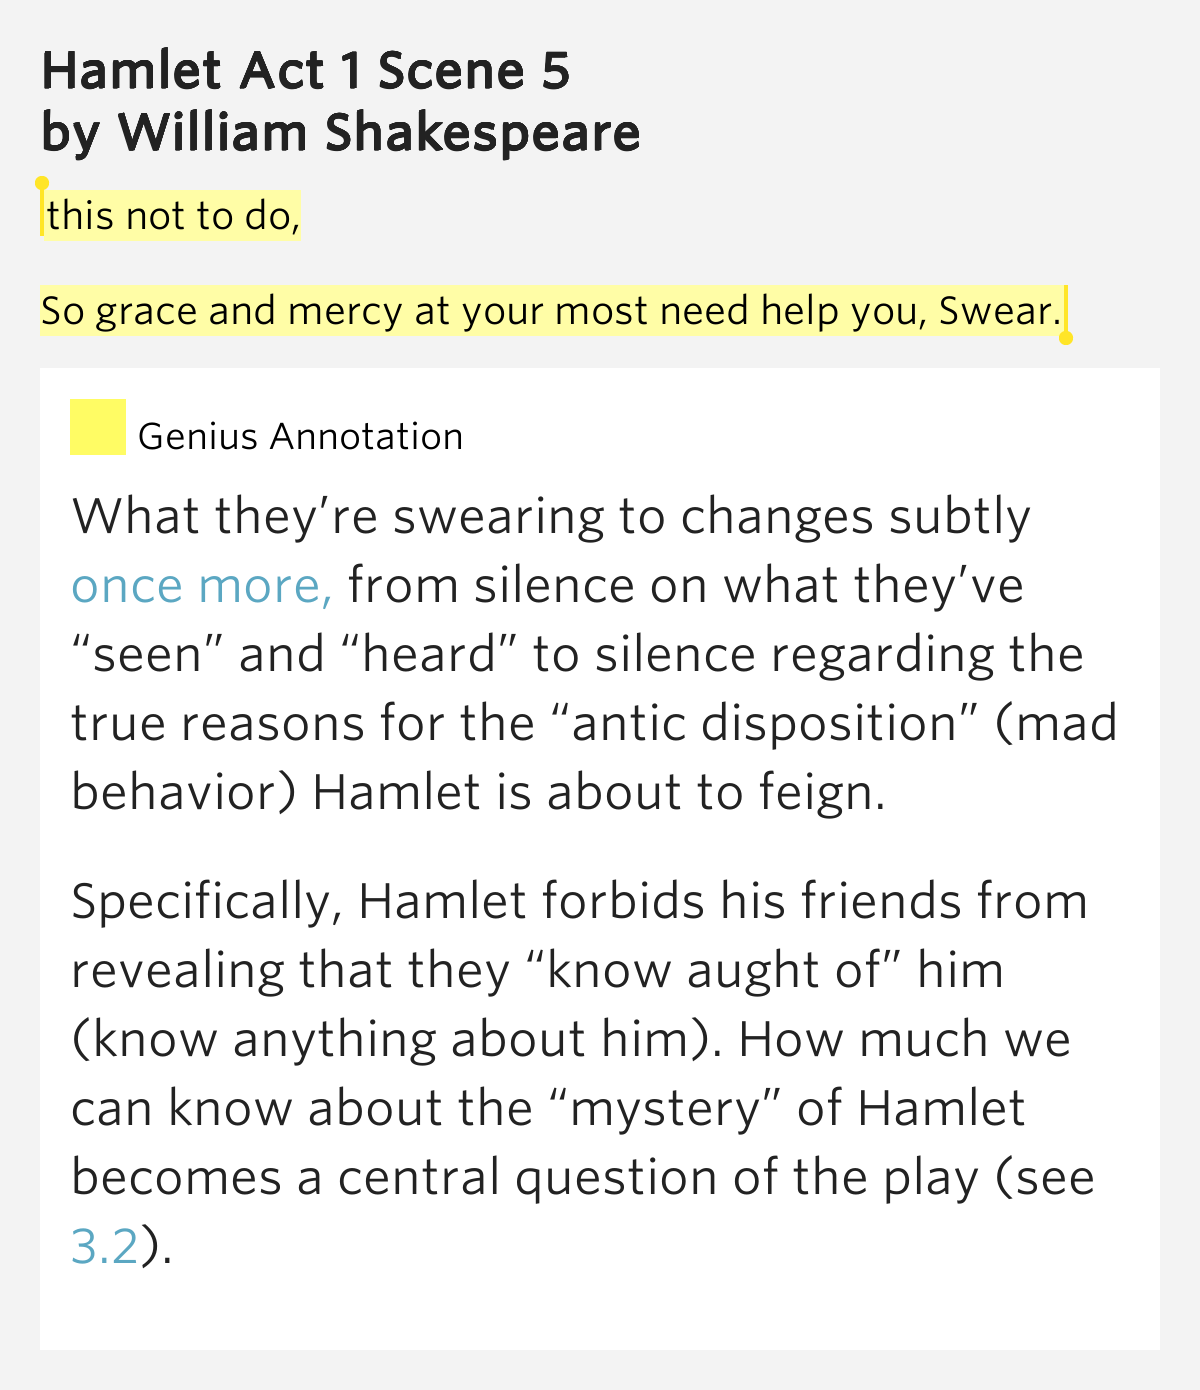 an examination of the behavior of hamlet in william shakespeares play hamlet Characters in hamlet only available on studymode topic: hamlet therefore, in the play hamlet, william shakespeare exemplifies the impact of betrayal on family dynamics throught the use of conflict, dialogue, and irony.